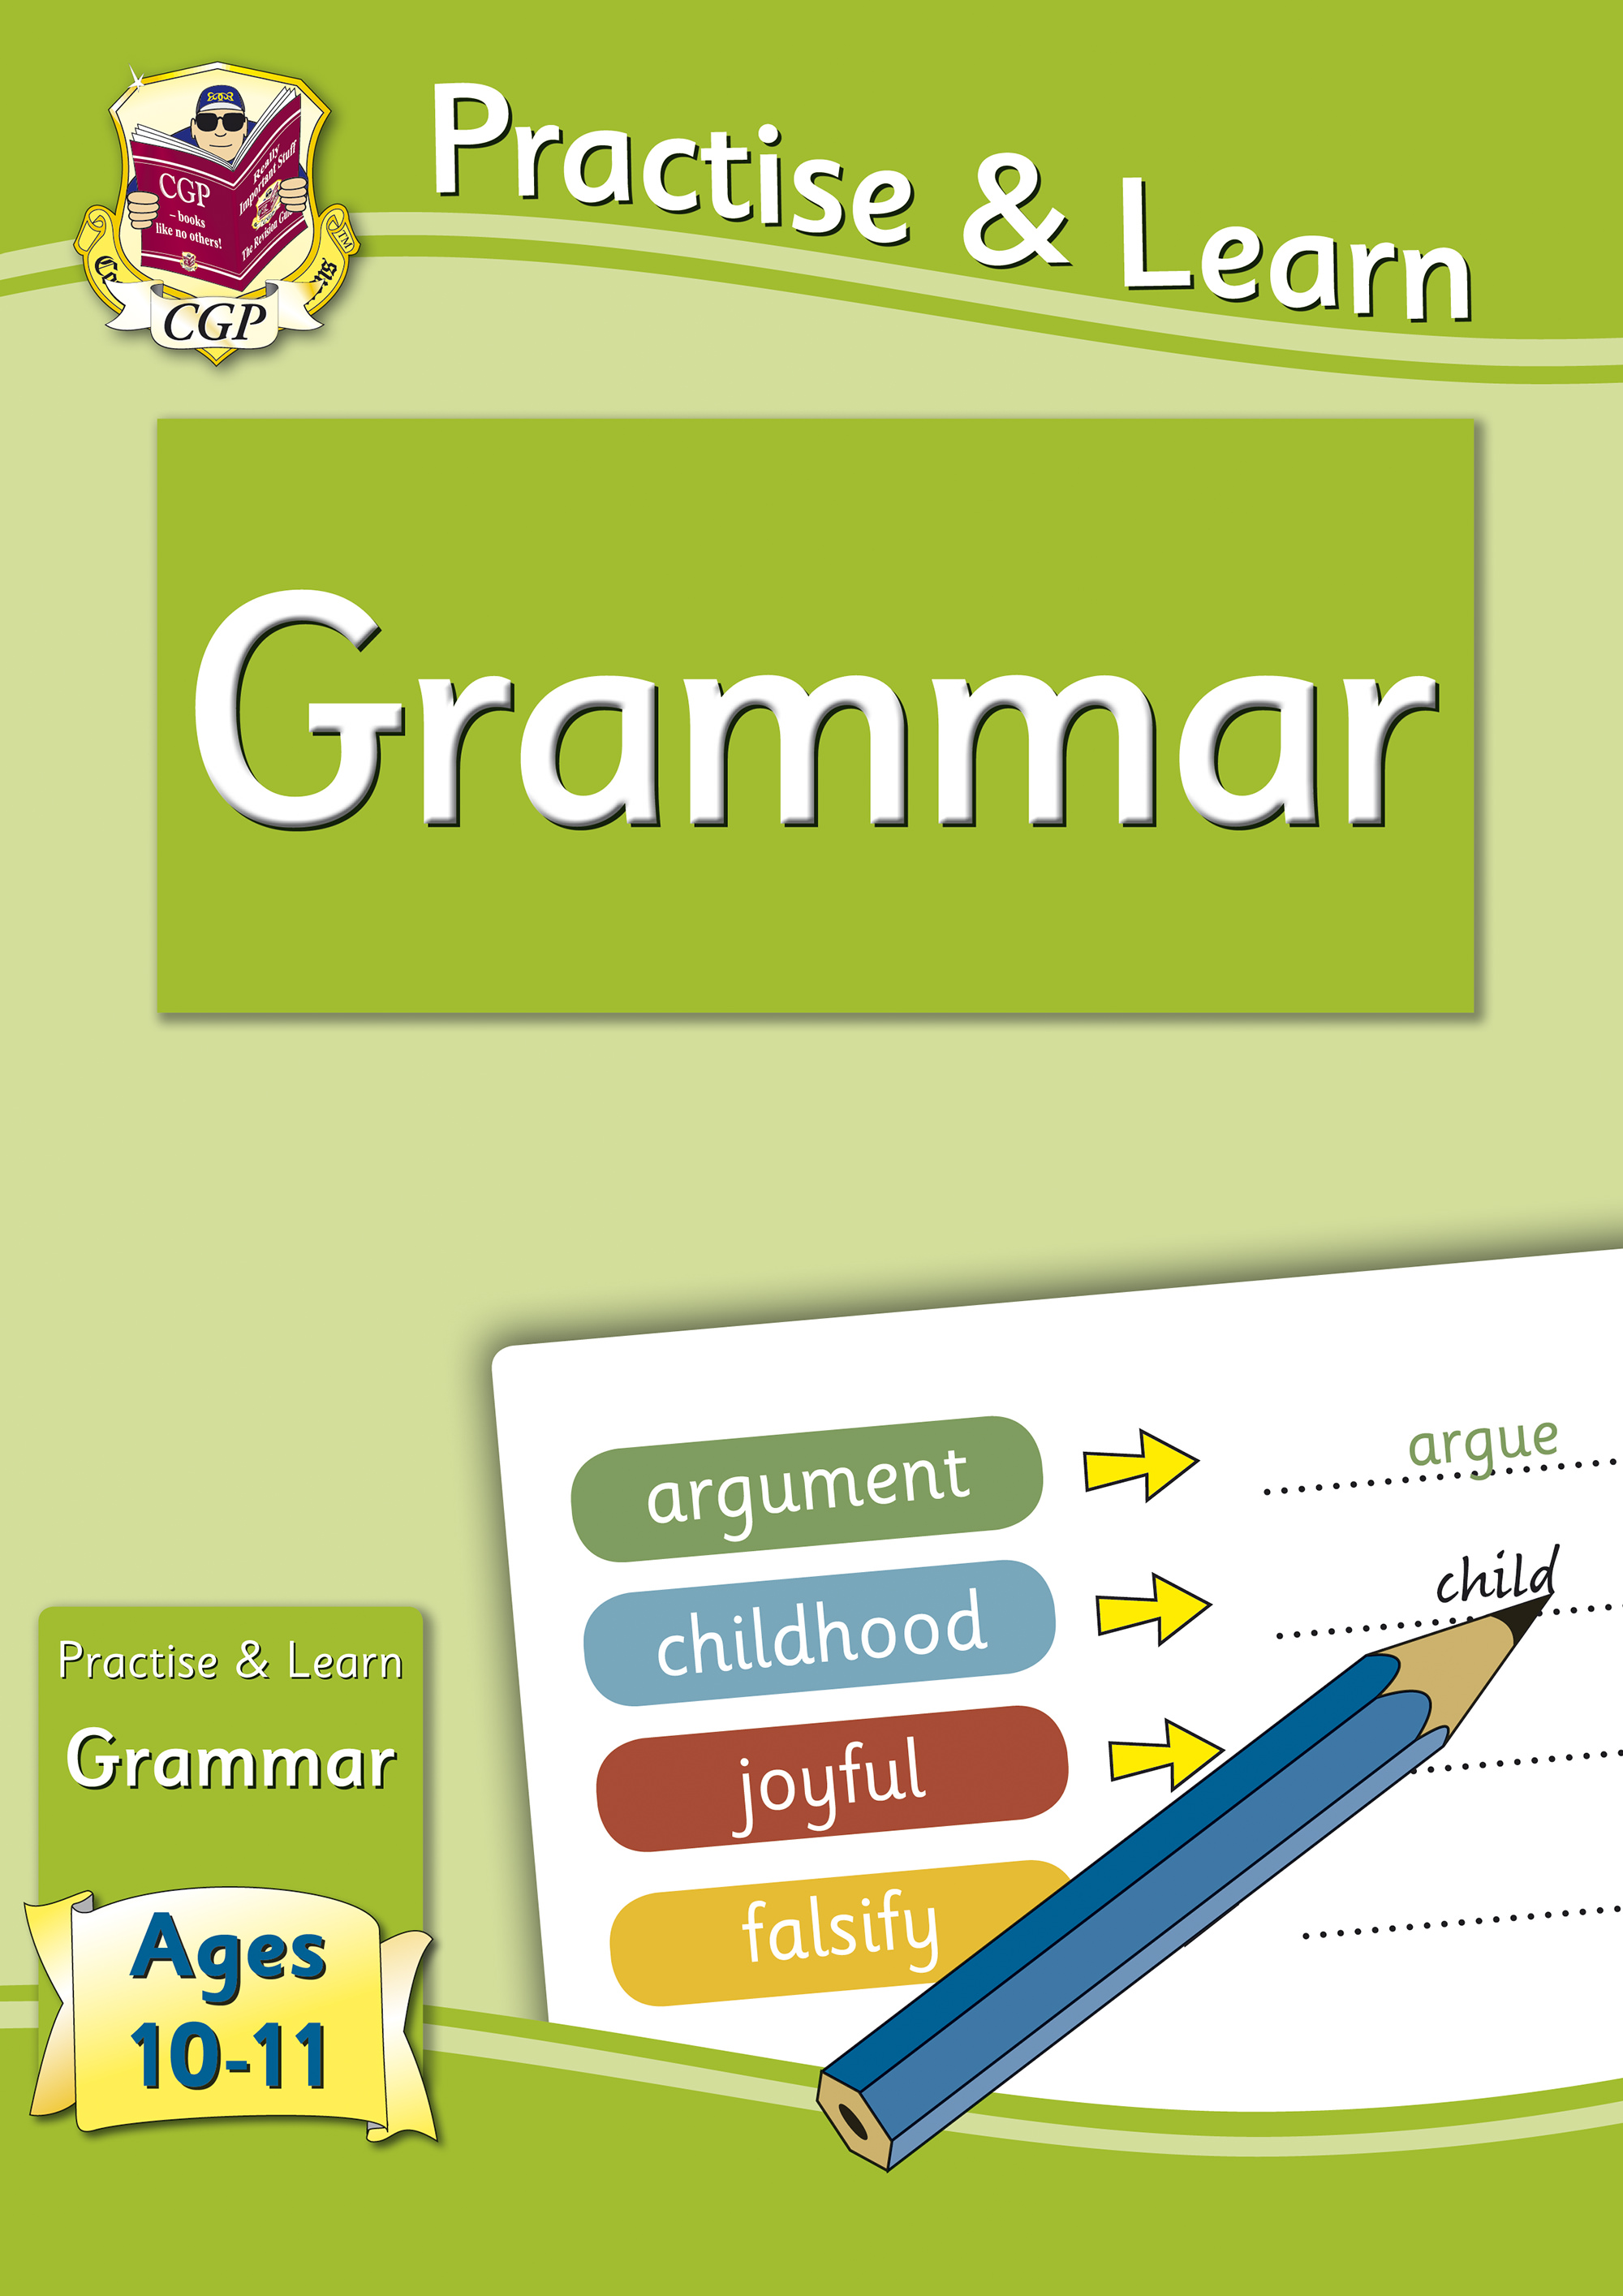 EP6G21 - Practise & Learn: Grammar (Ages 10-11)